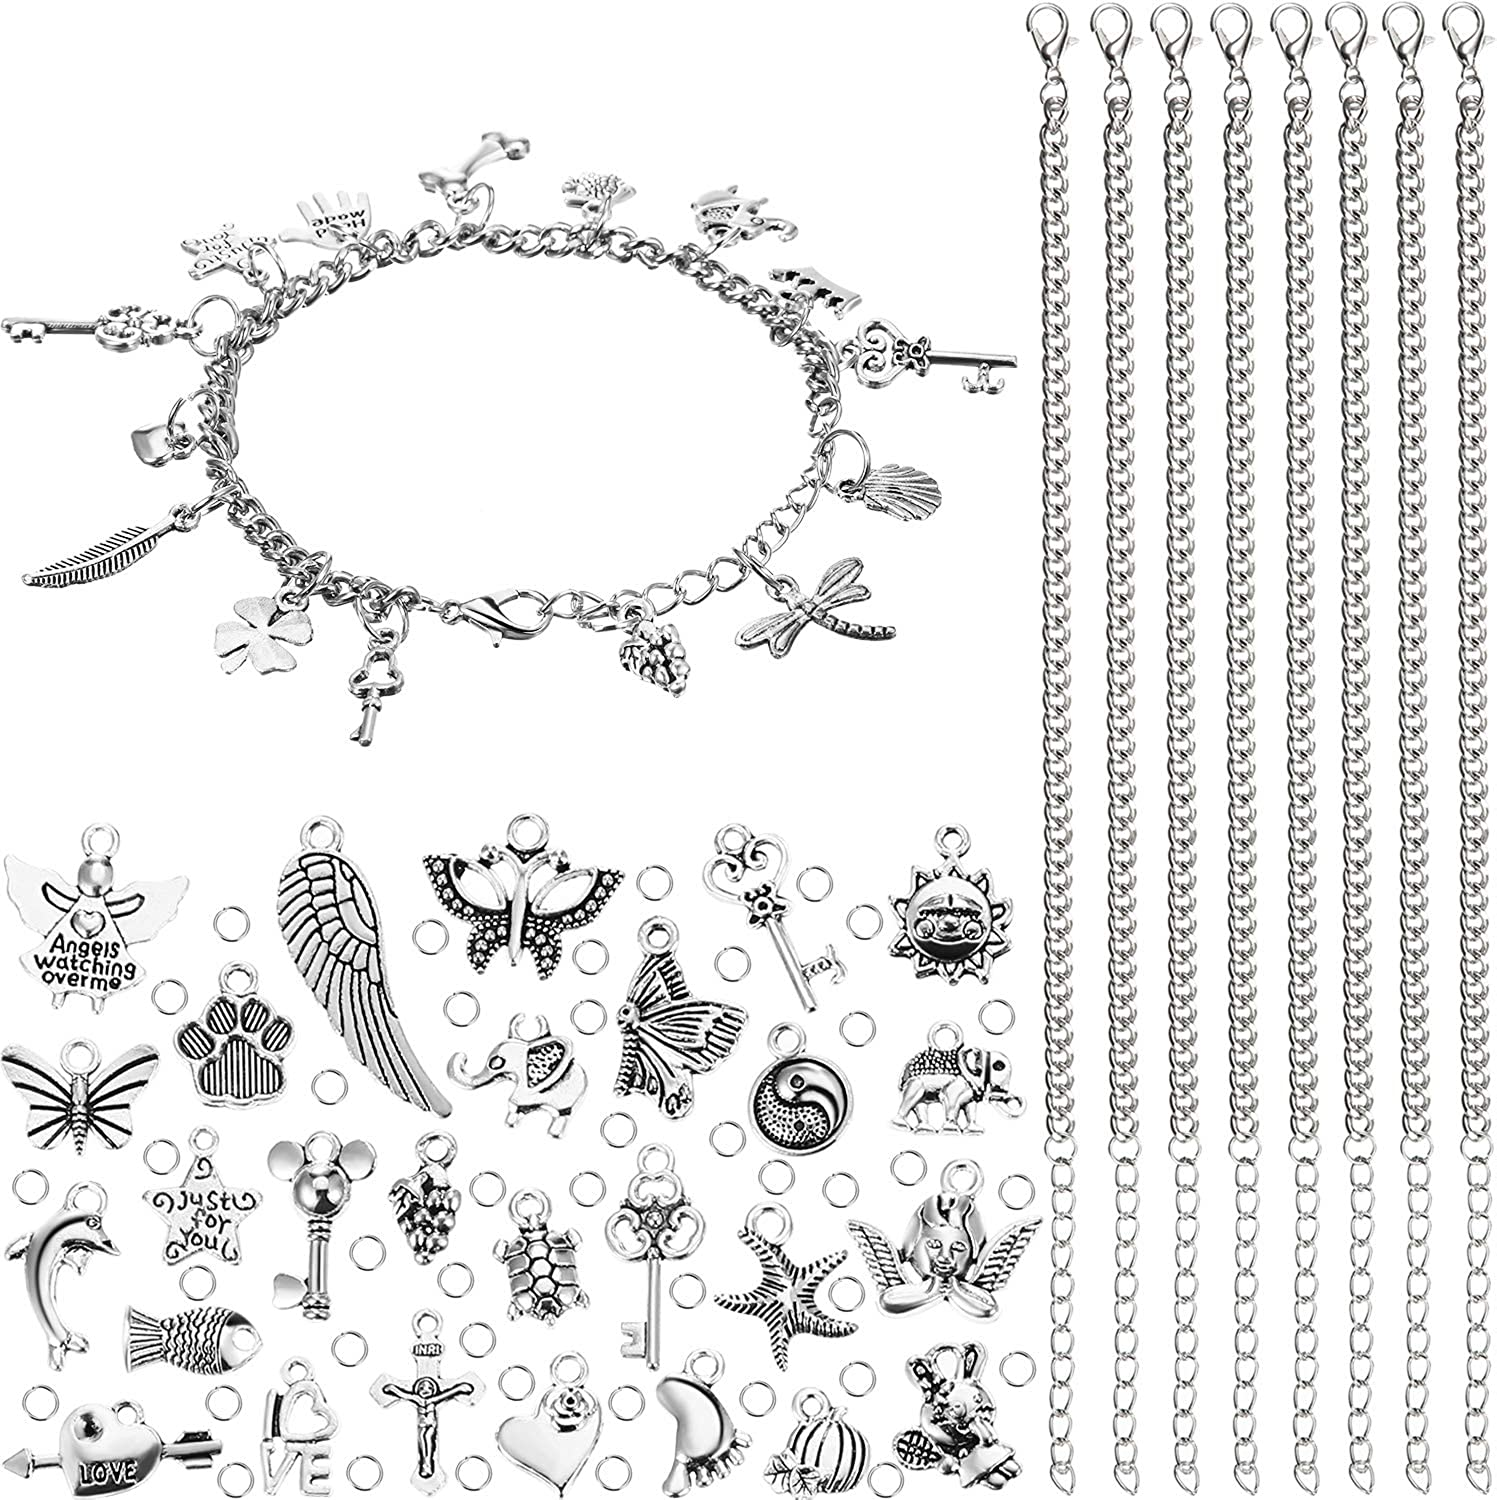 100 Pieces Jewelry Making security Charm Cheap mail order specialty store Stainless Steel 12 Chain